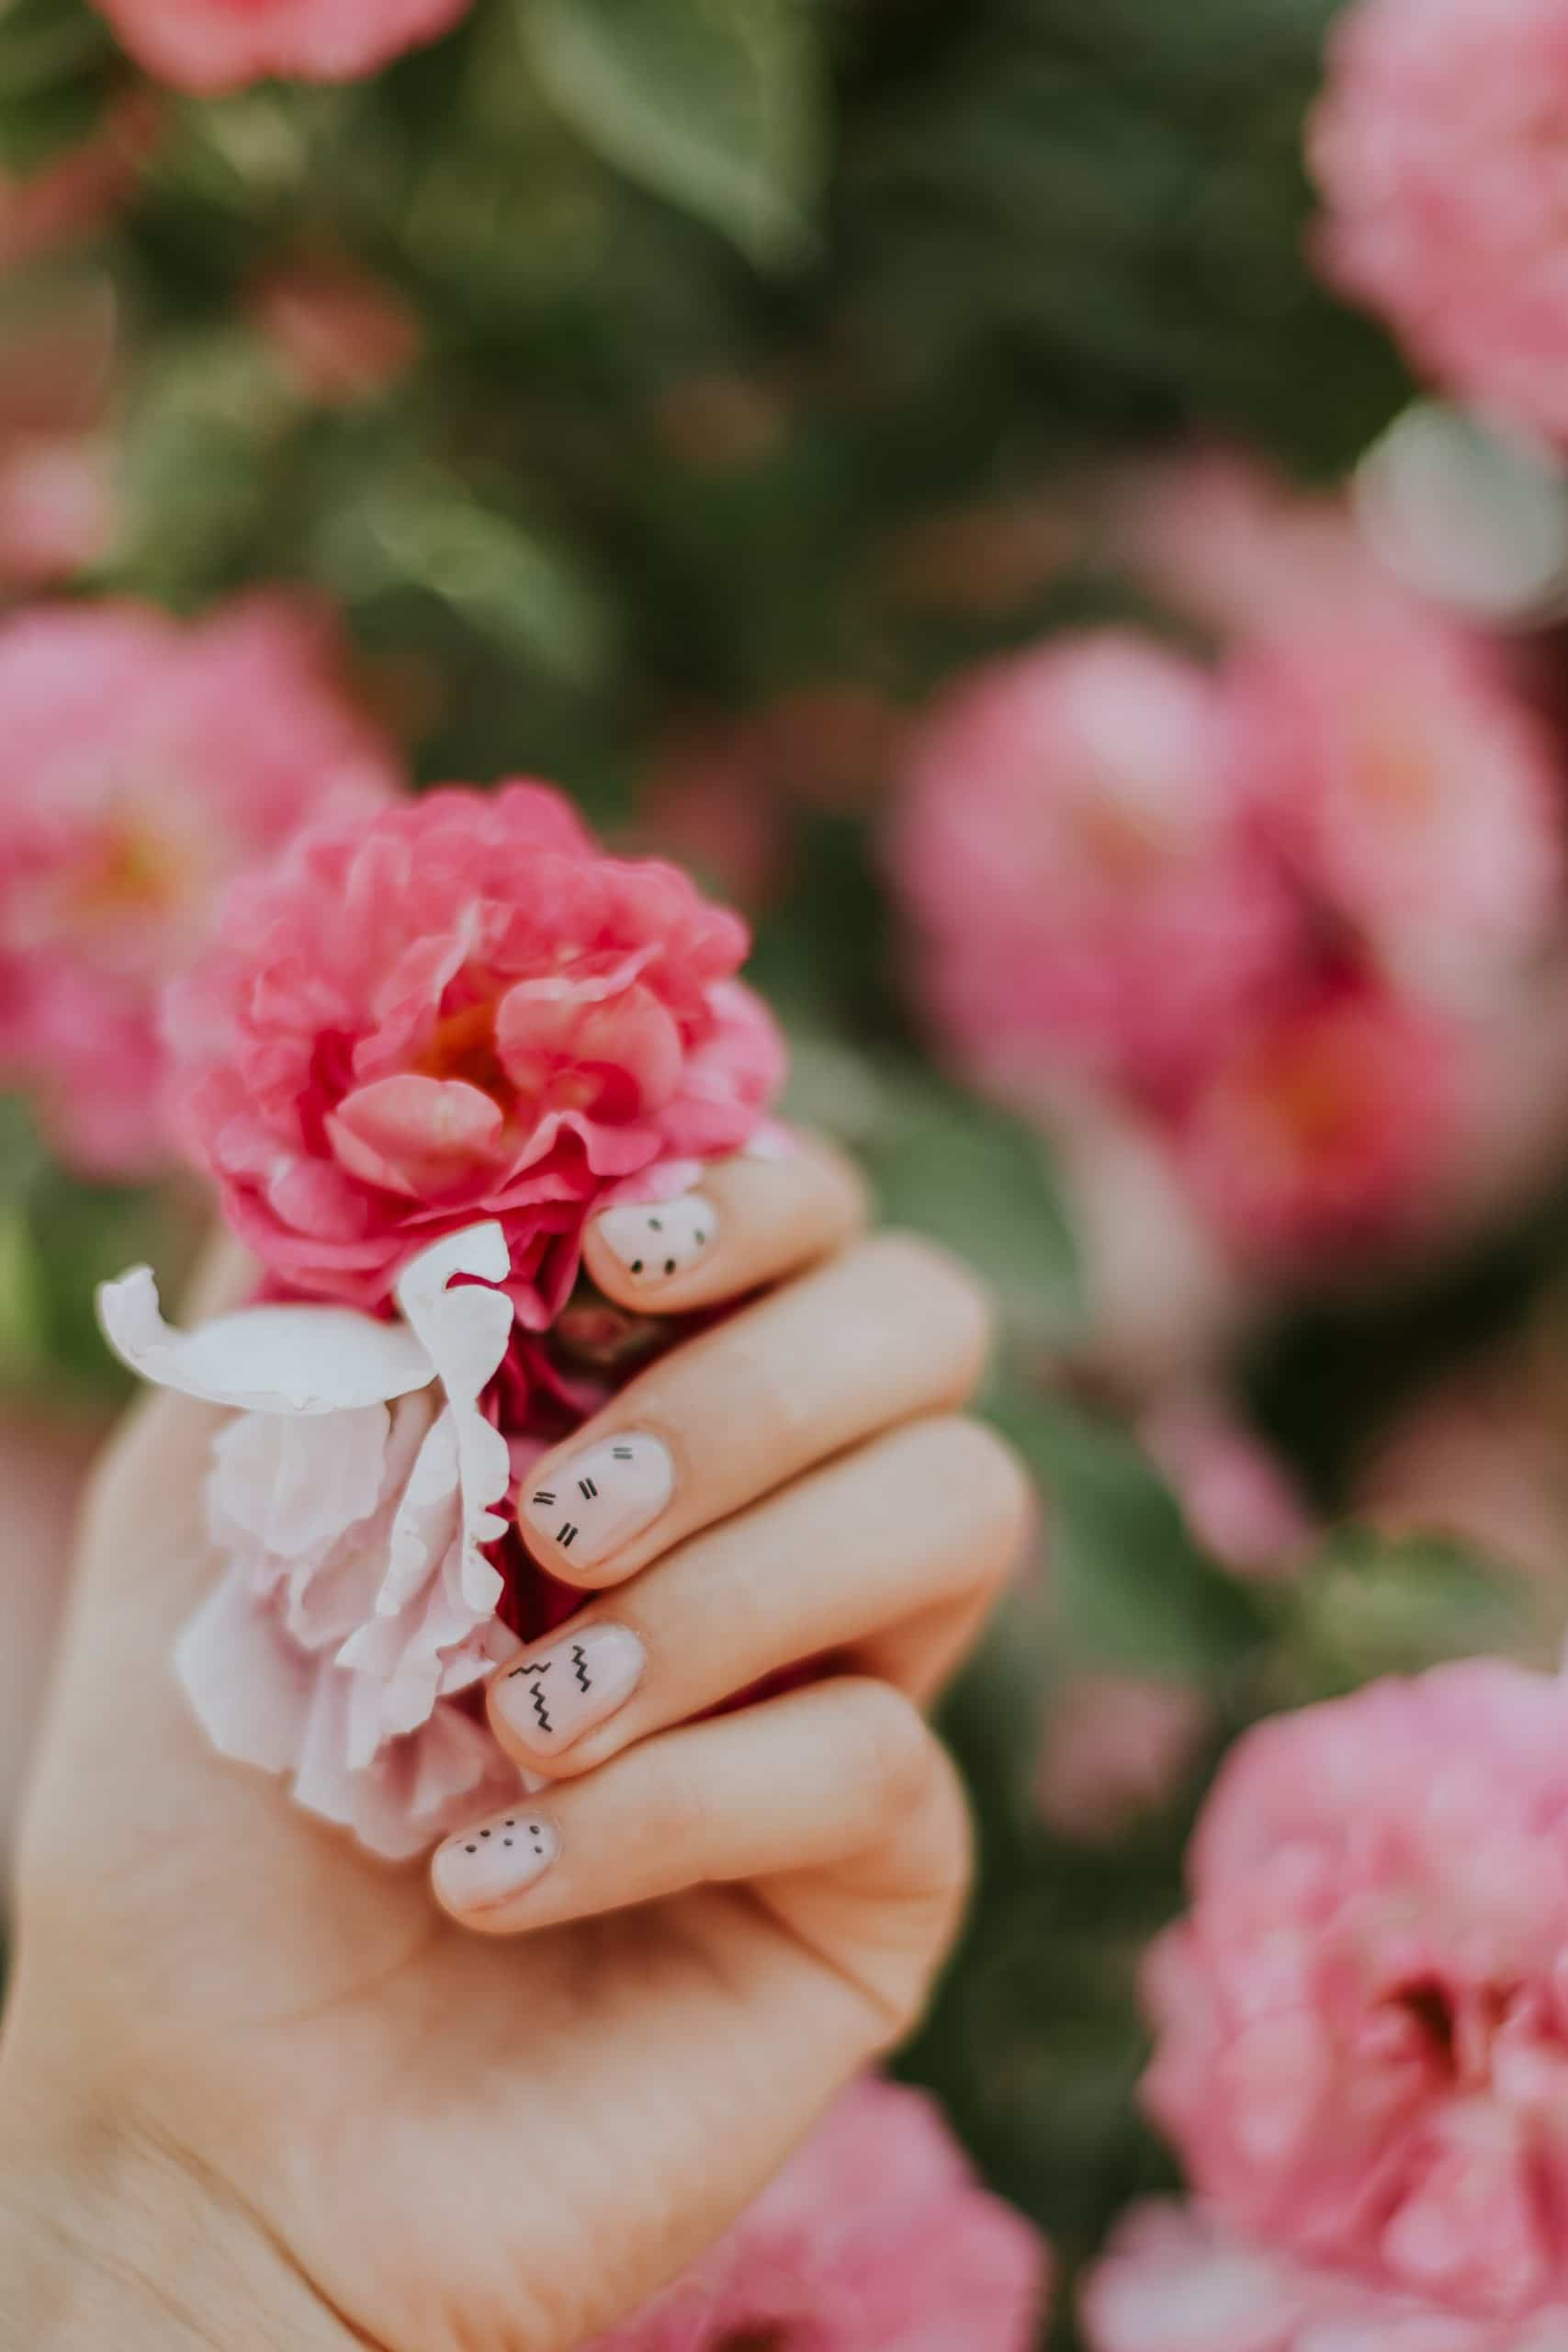 flower in hand with painted nails